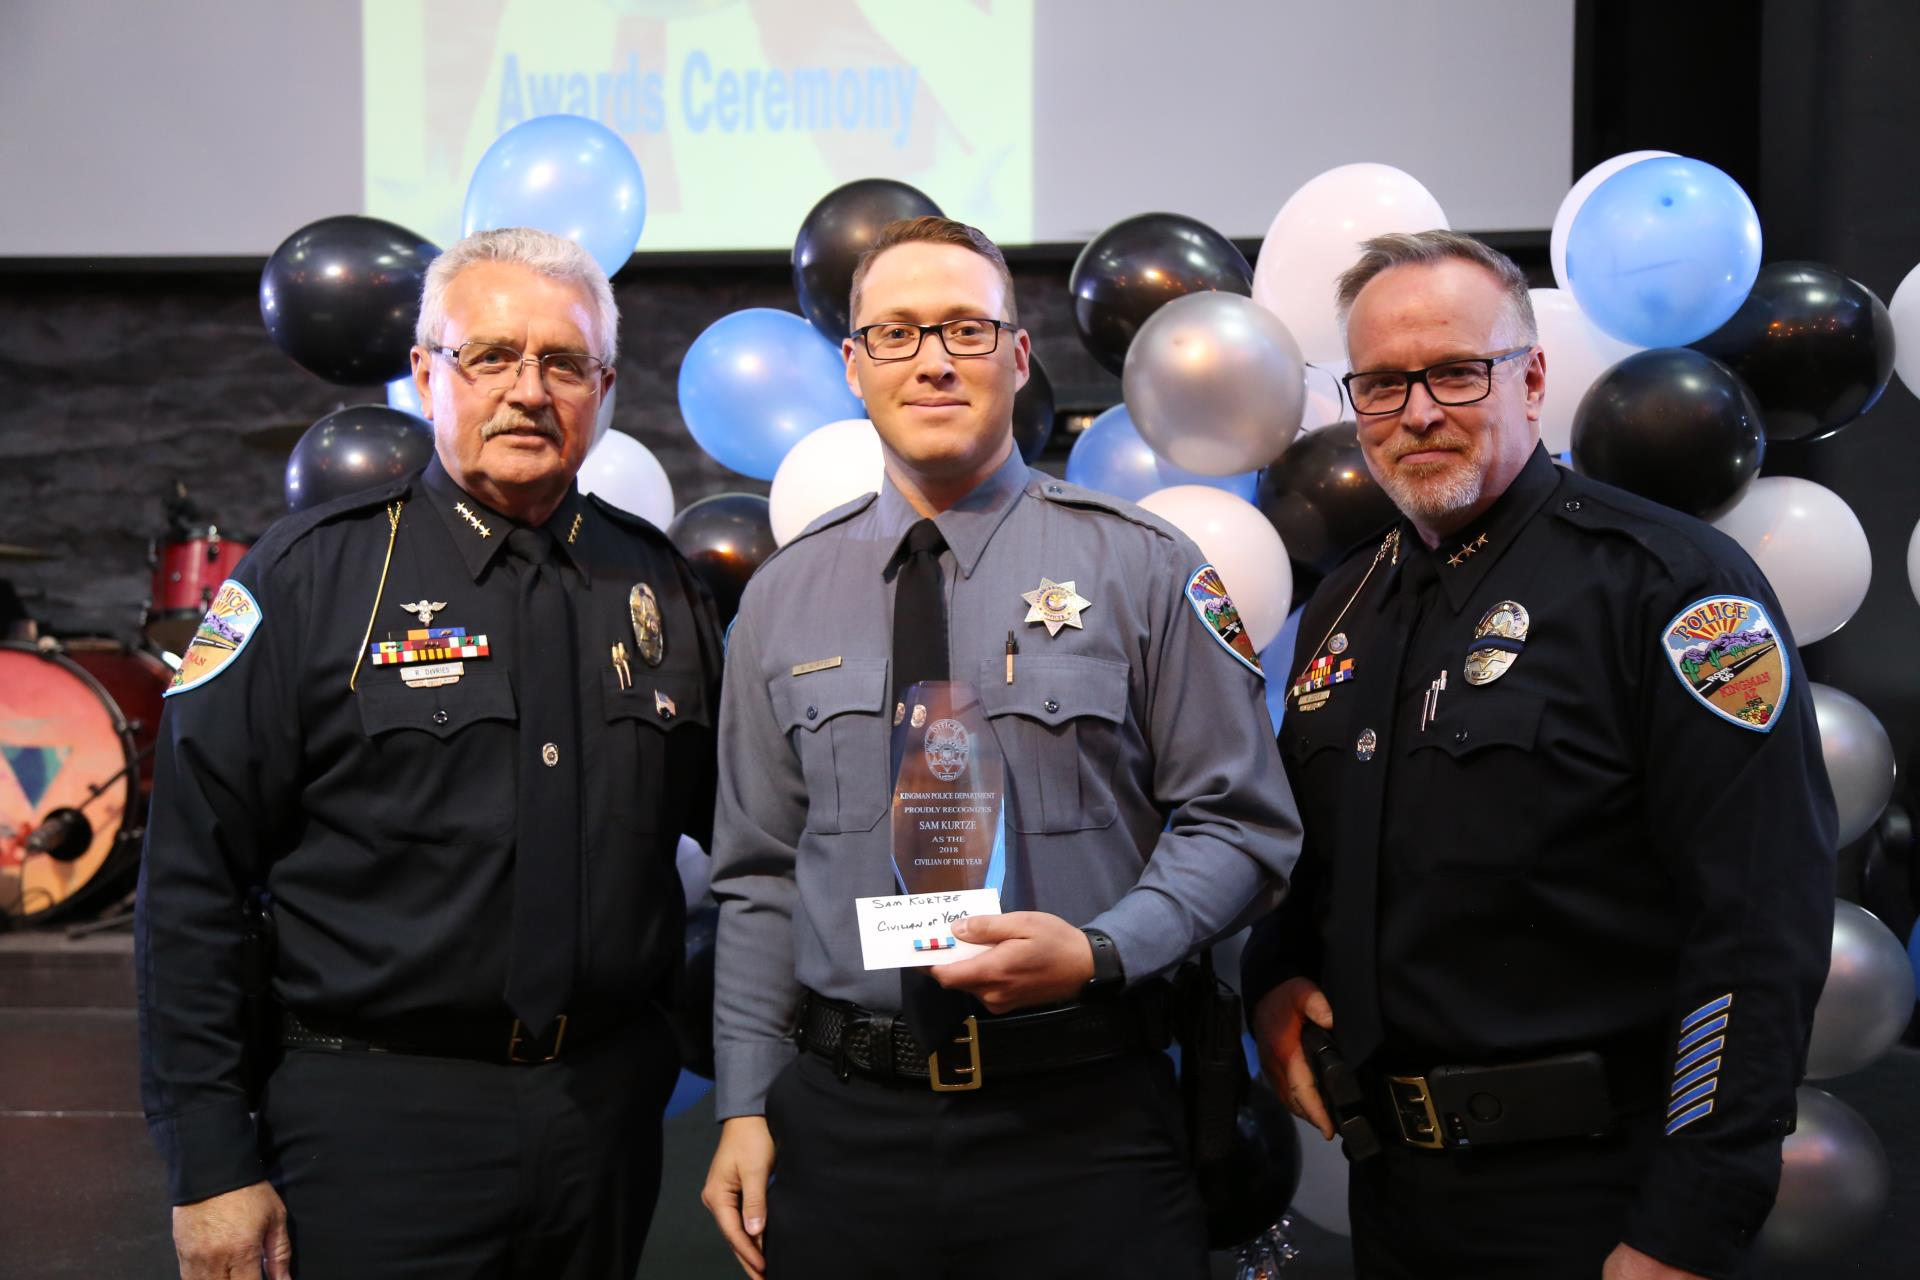 Chief Robert DeVries, Civilian of the Year Sam Kurtze, and Deputy Chief Rusty Cooper